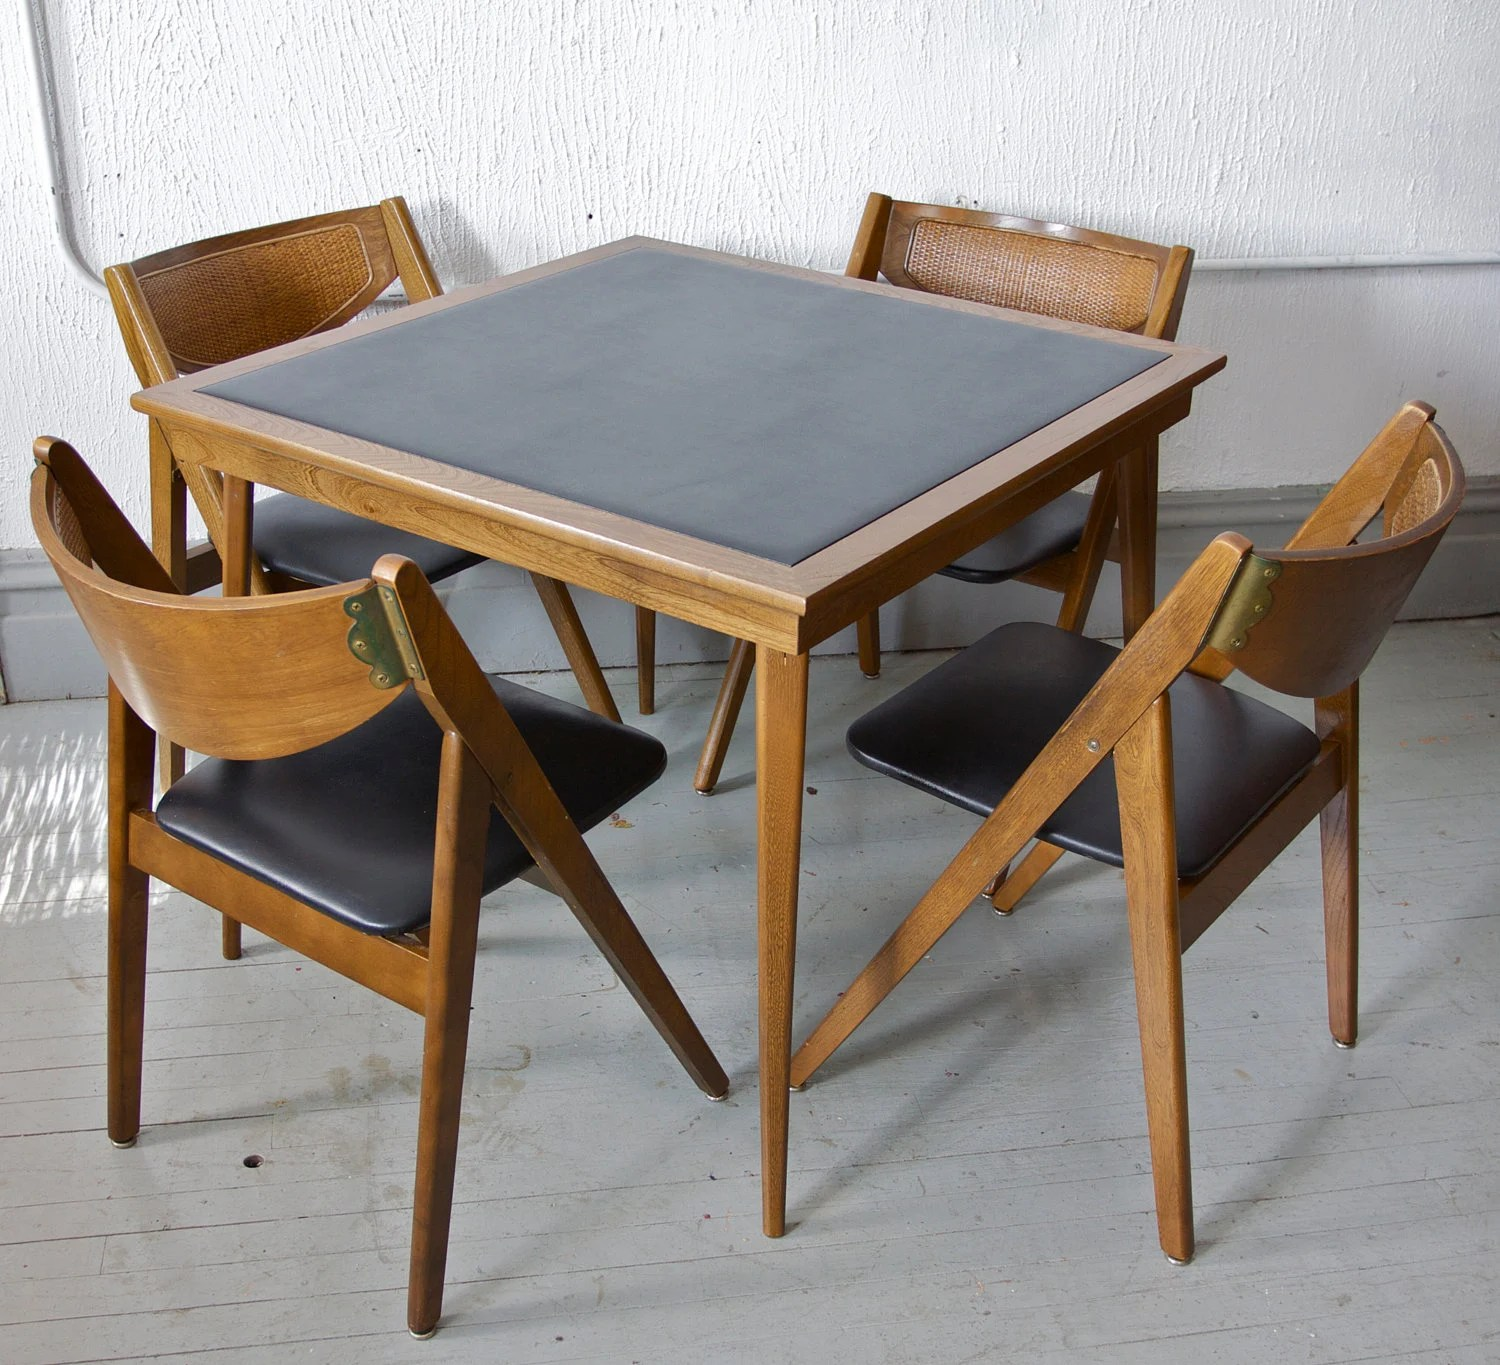 Stakmore Folding Chair Vintage Mid Century Modern Stakmore Folding Chairs And Card